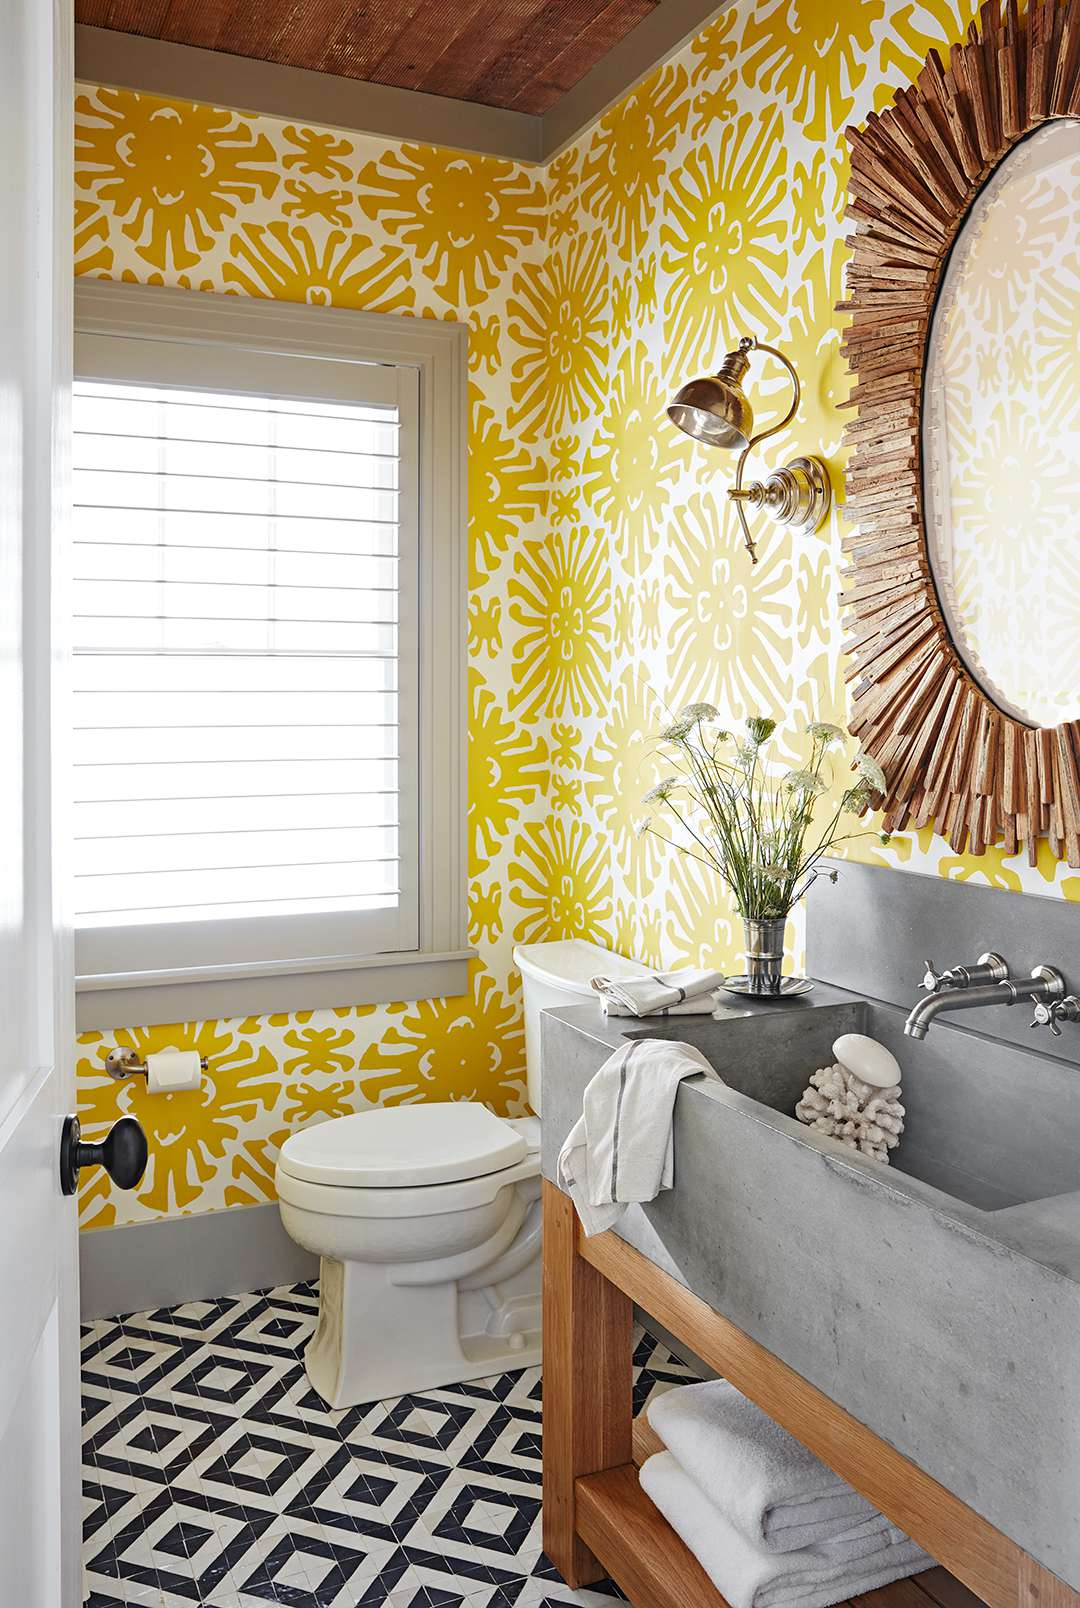 A shower room with yellow color